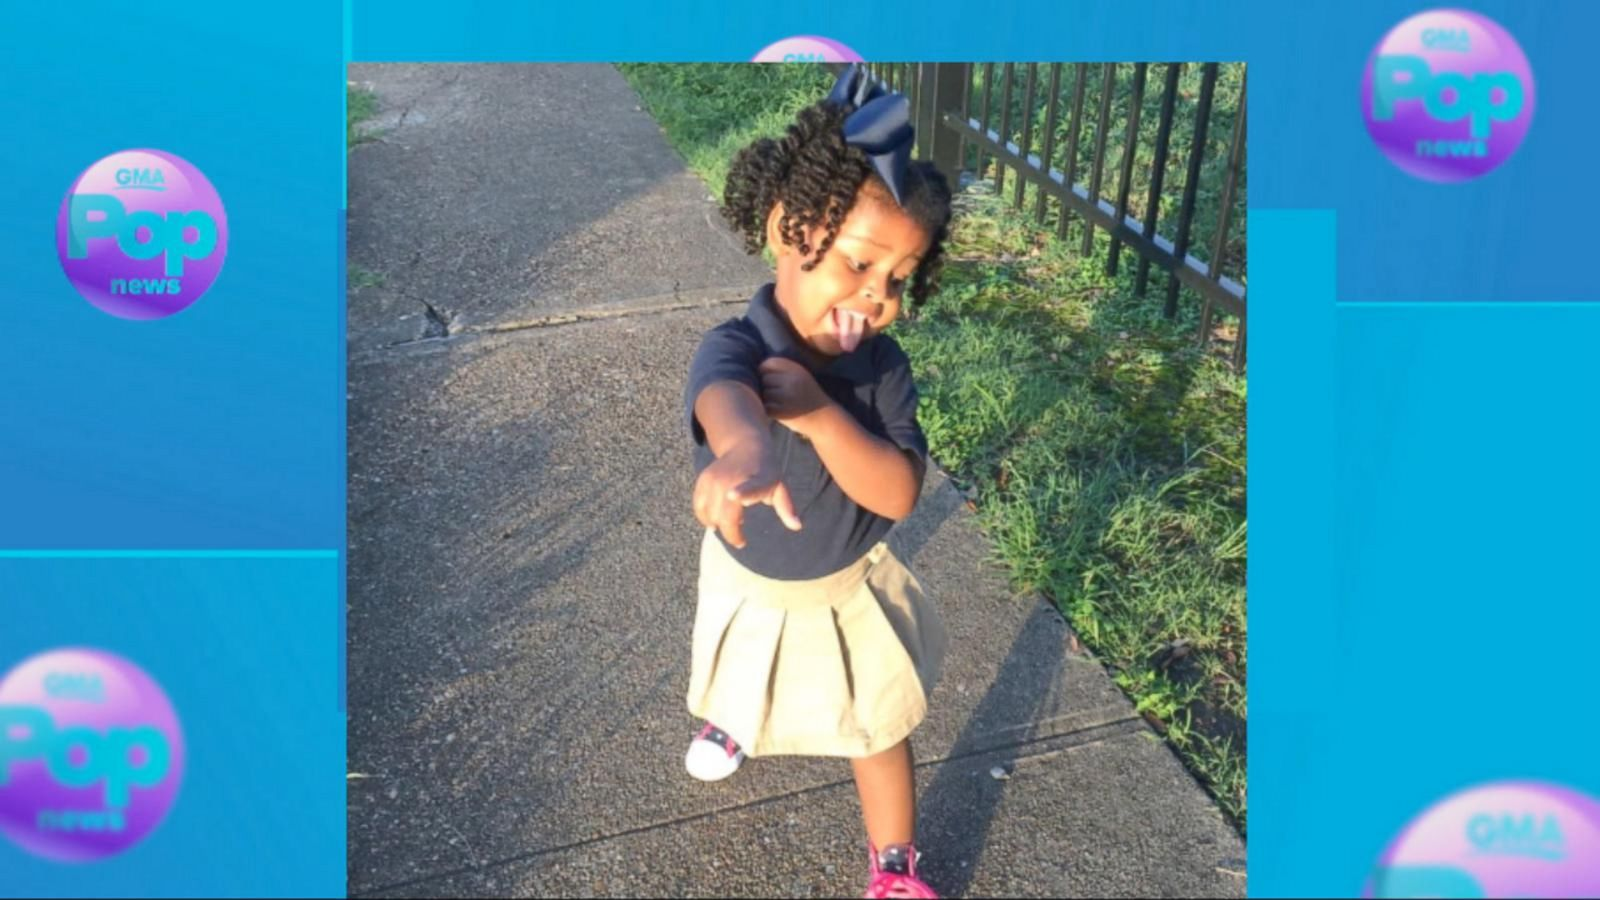 VIDEO: Little Girl's Excitement for First Day of School is Contagious